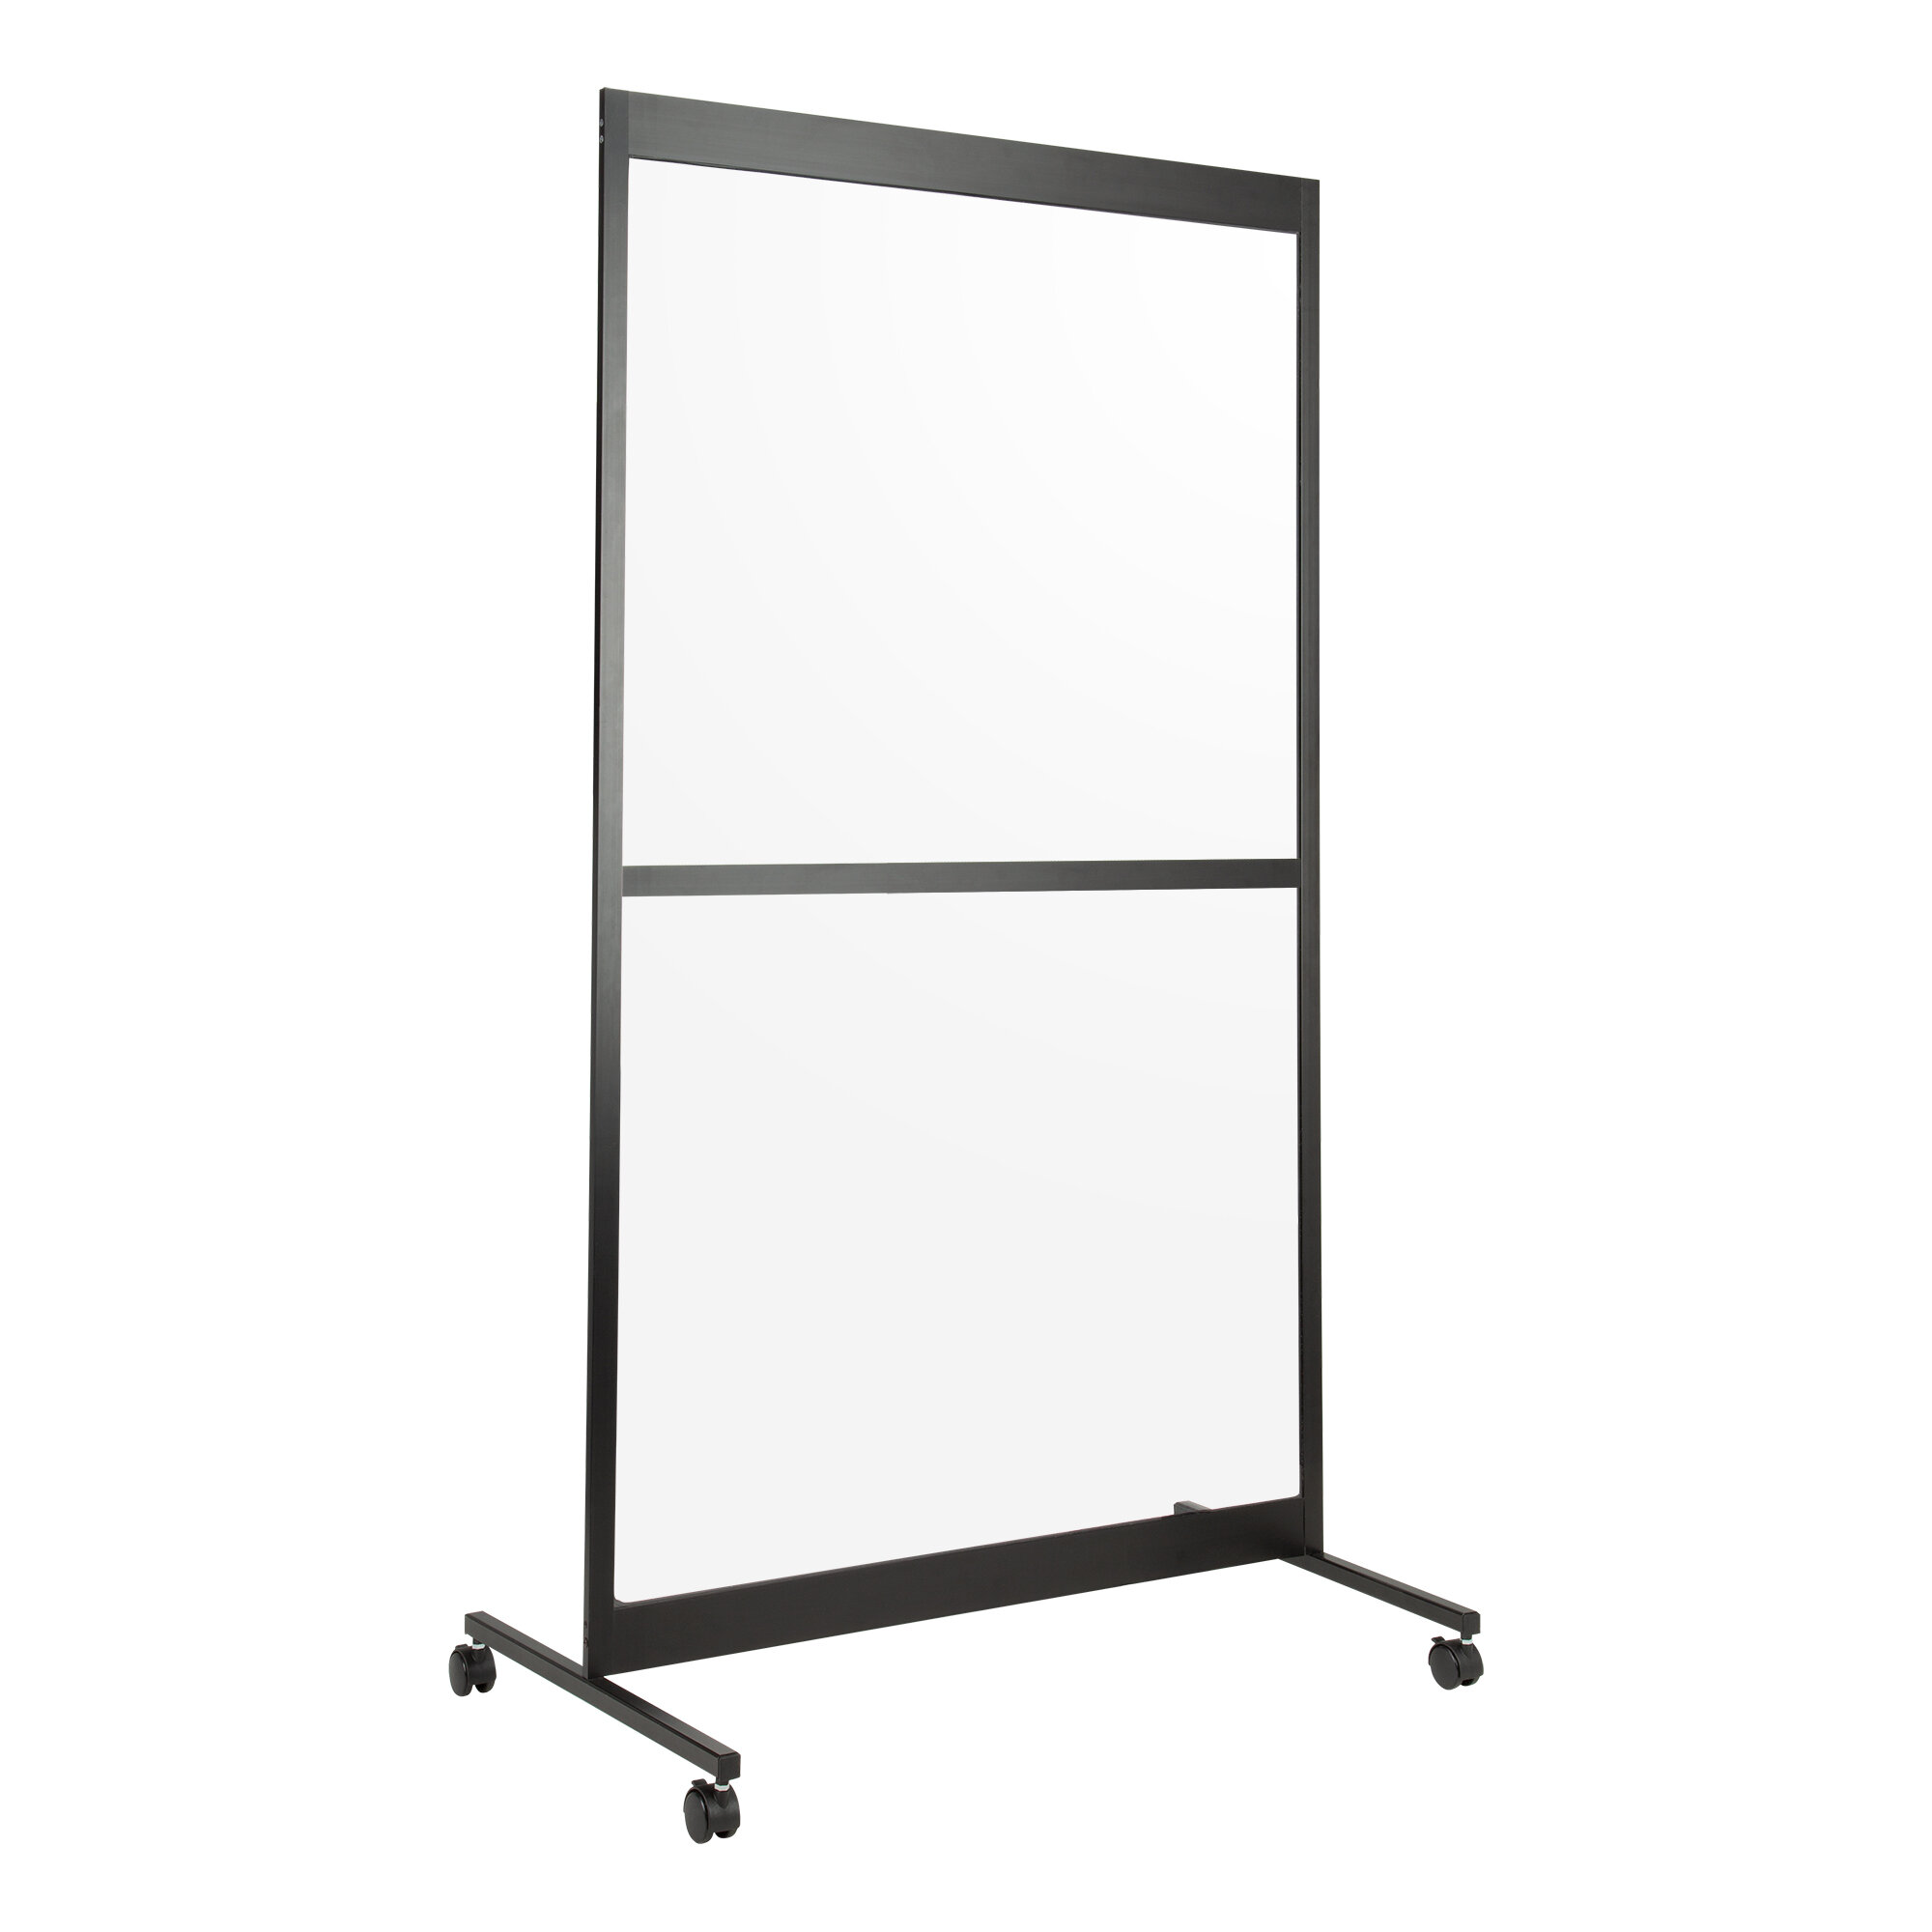 Norwood Commercial Furniture Portable Sneeze Guard 1 Panel Room Divider Wayfair